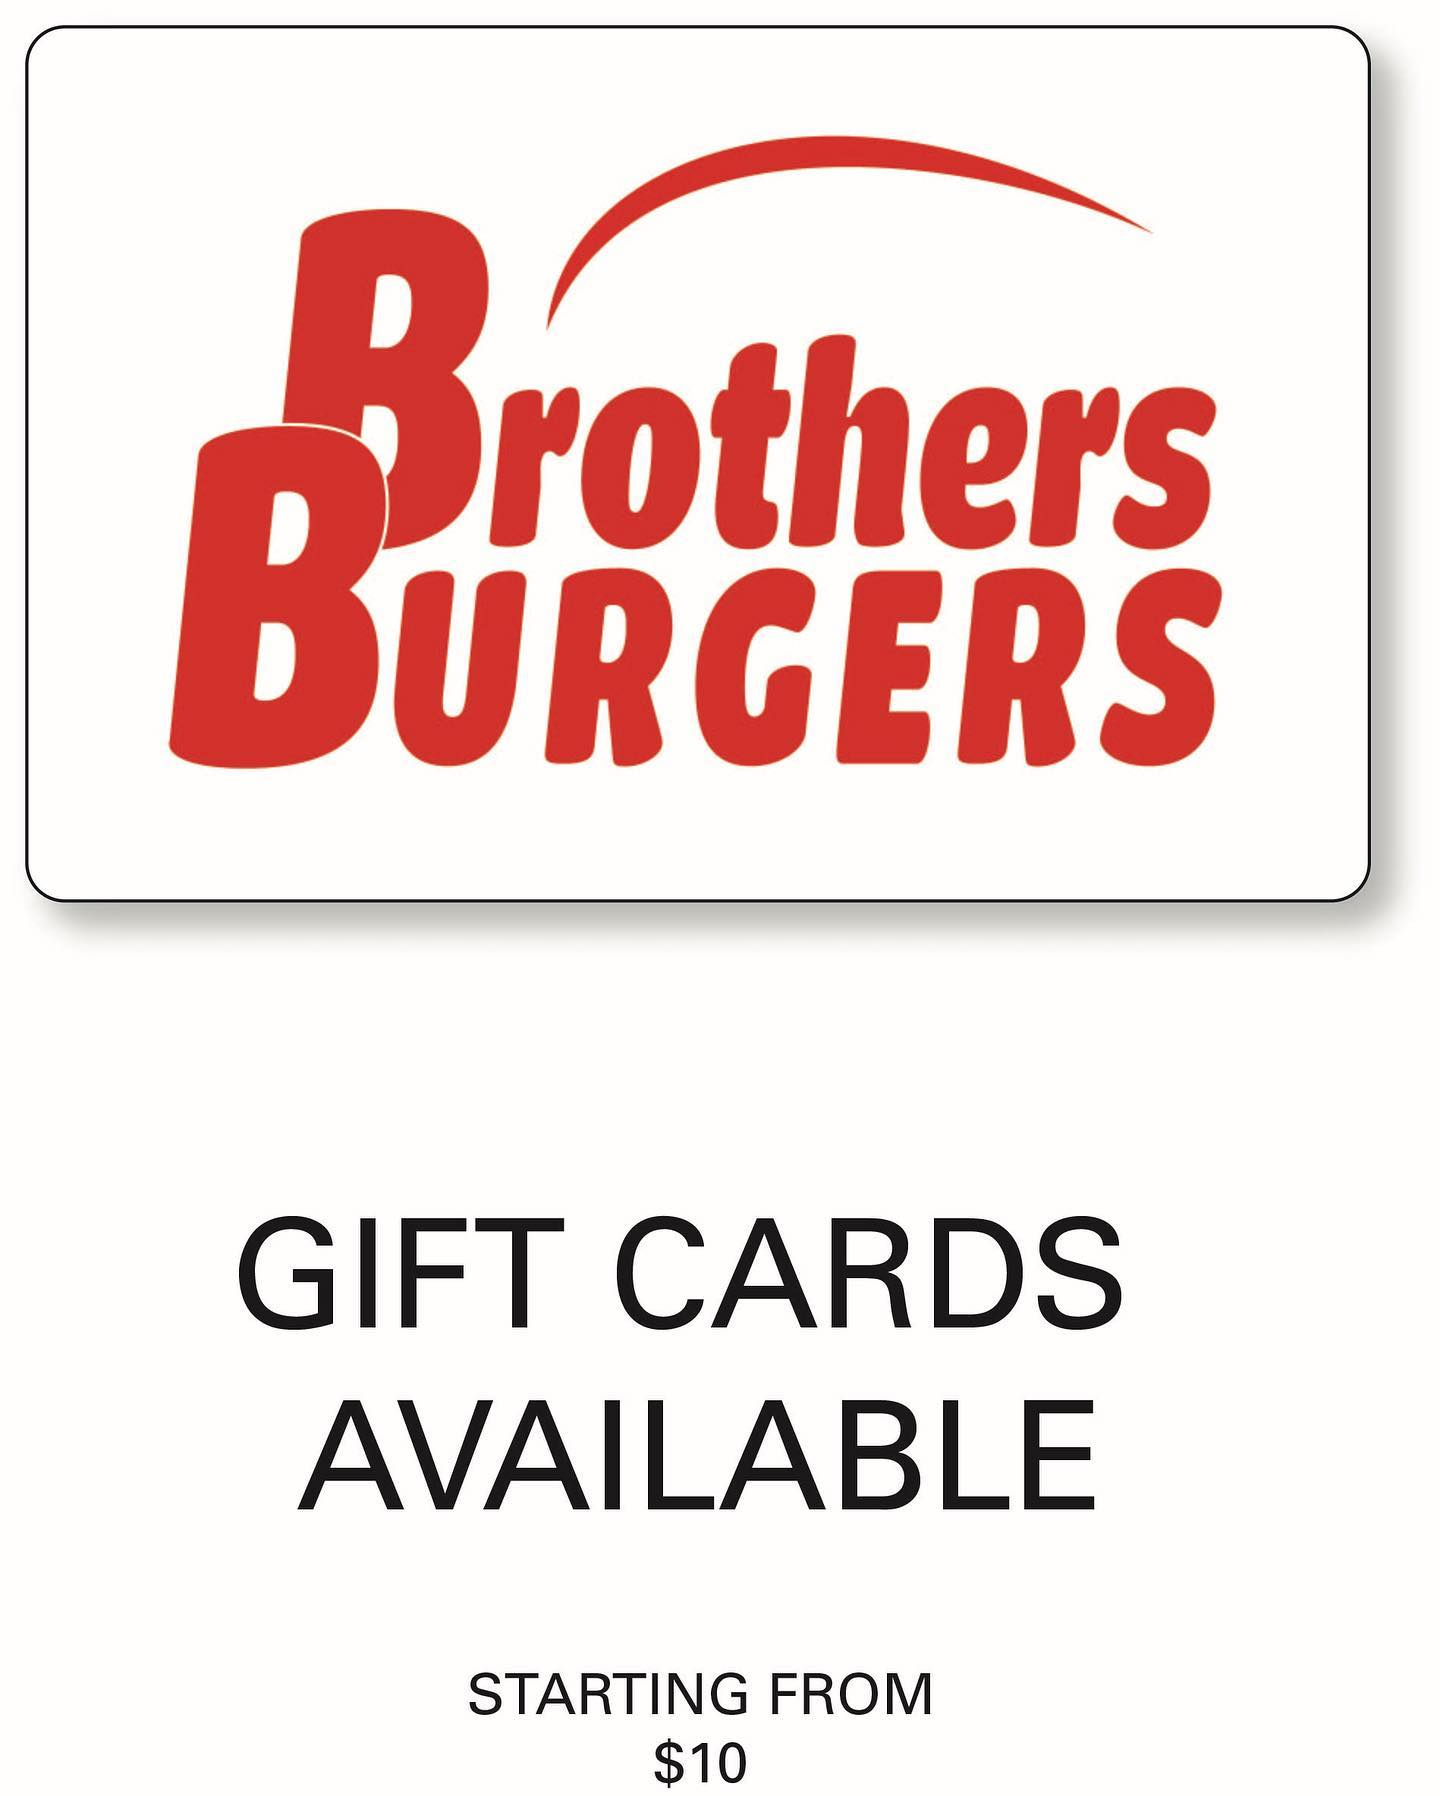 Brothers Burgers 843 N Mountain Ave, Ontario